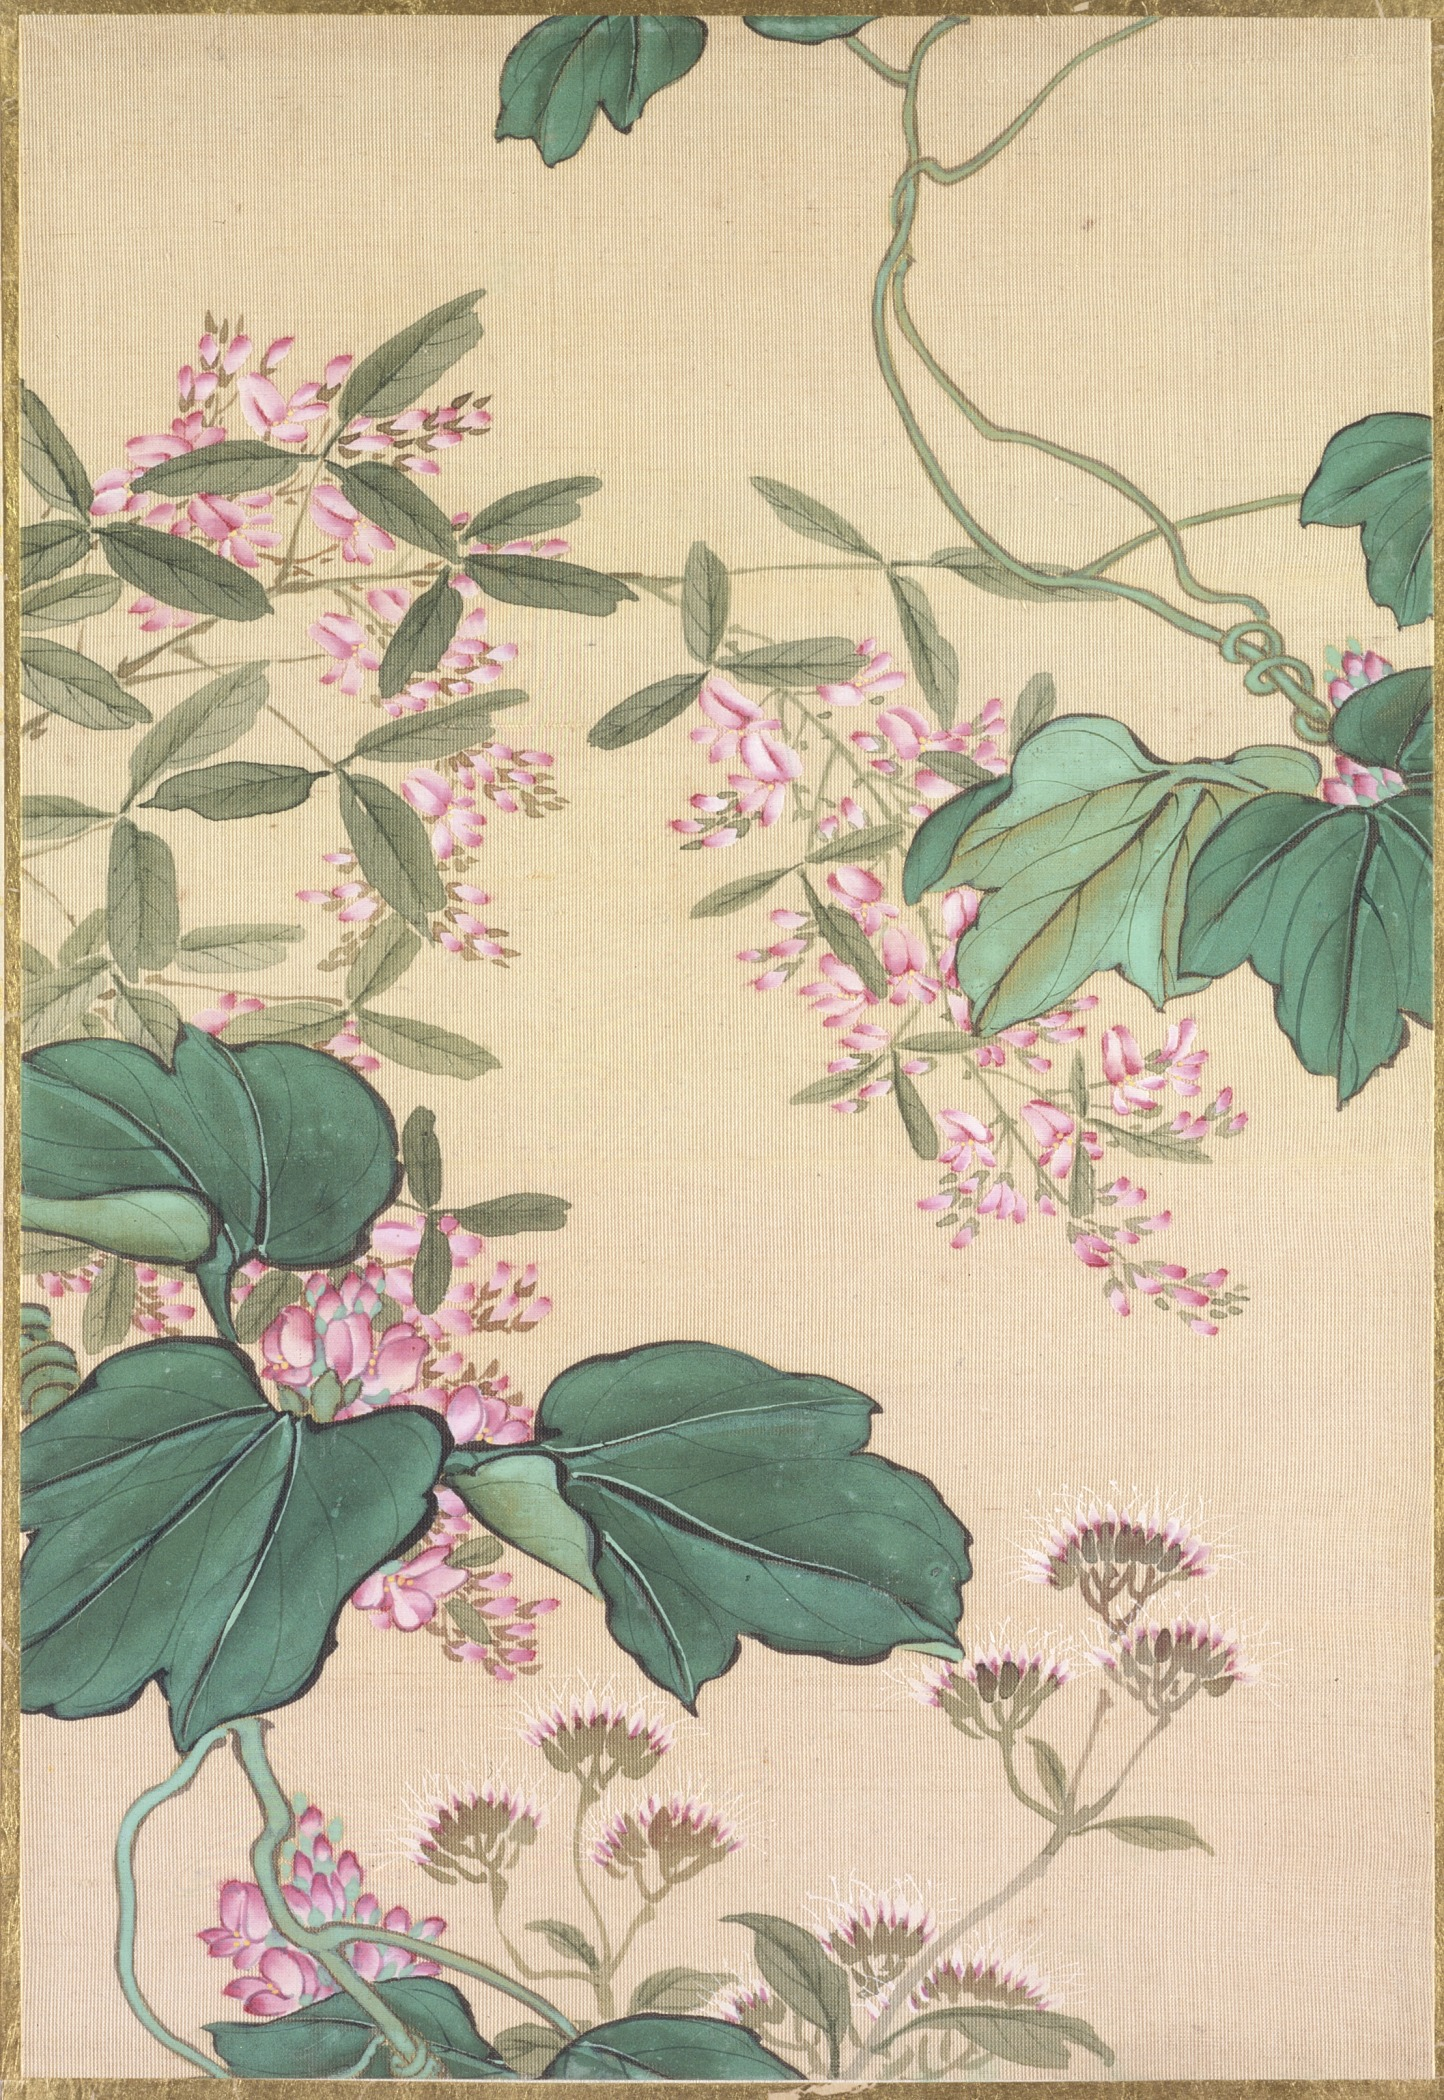 https://upload.wikimedia.org/wikipedia/commons/e/e6/Pictures_of_Flowers_and_Birds_LACMA_M.85.99_%288_of_25%29.jpg